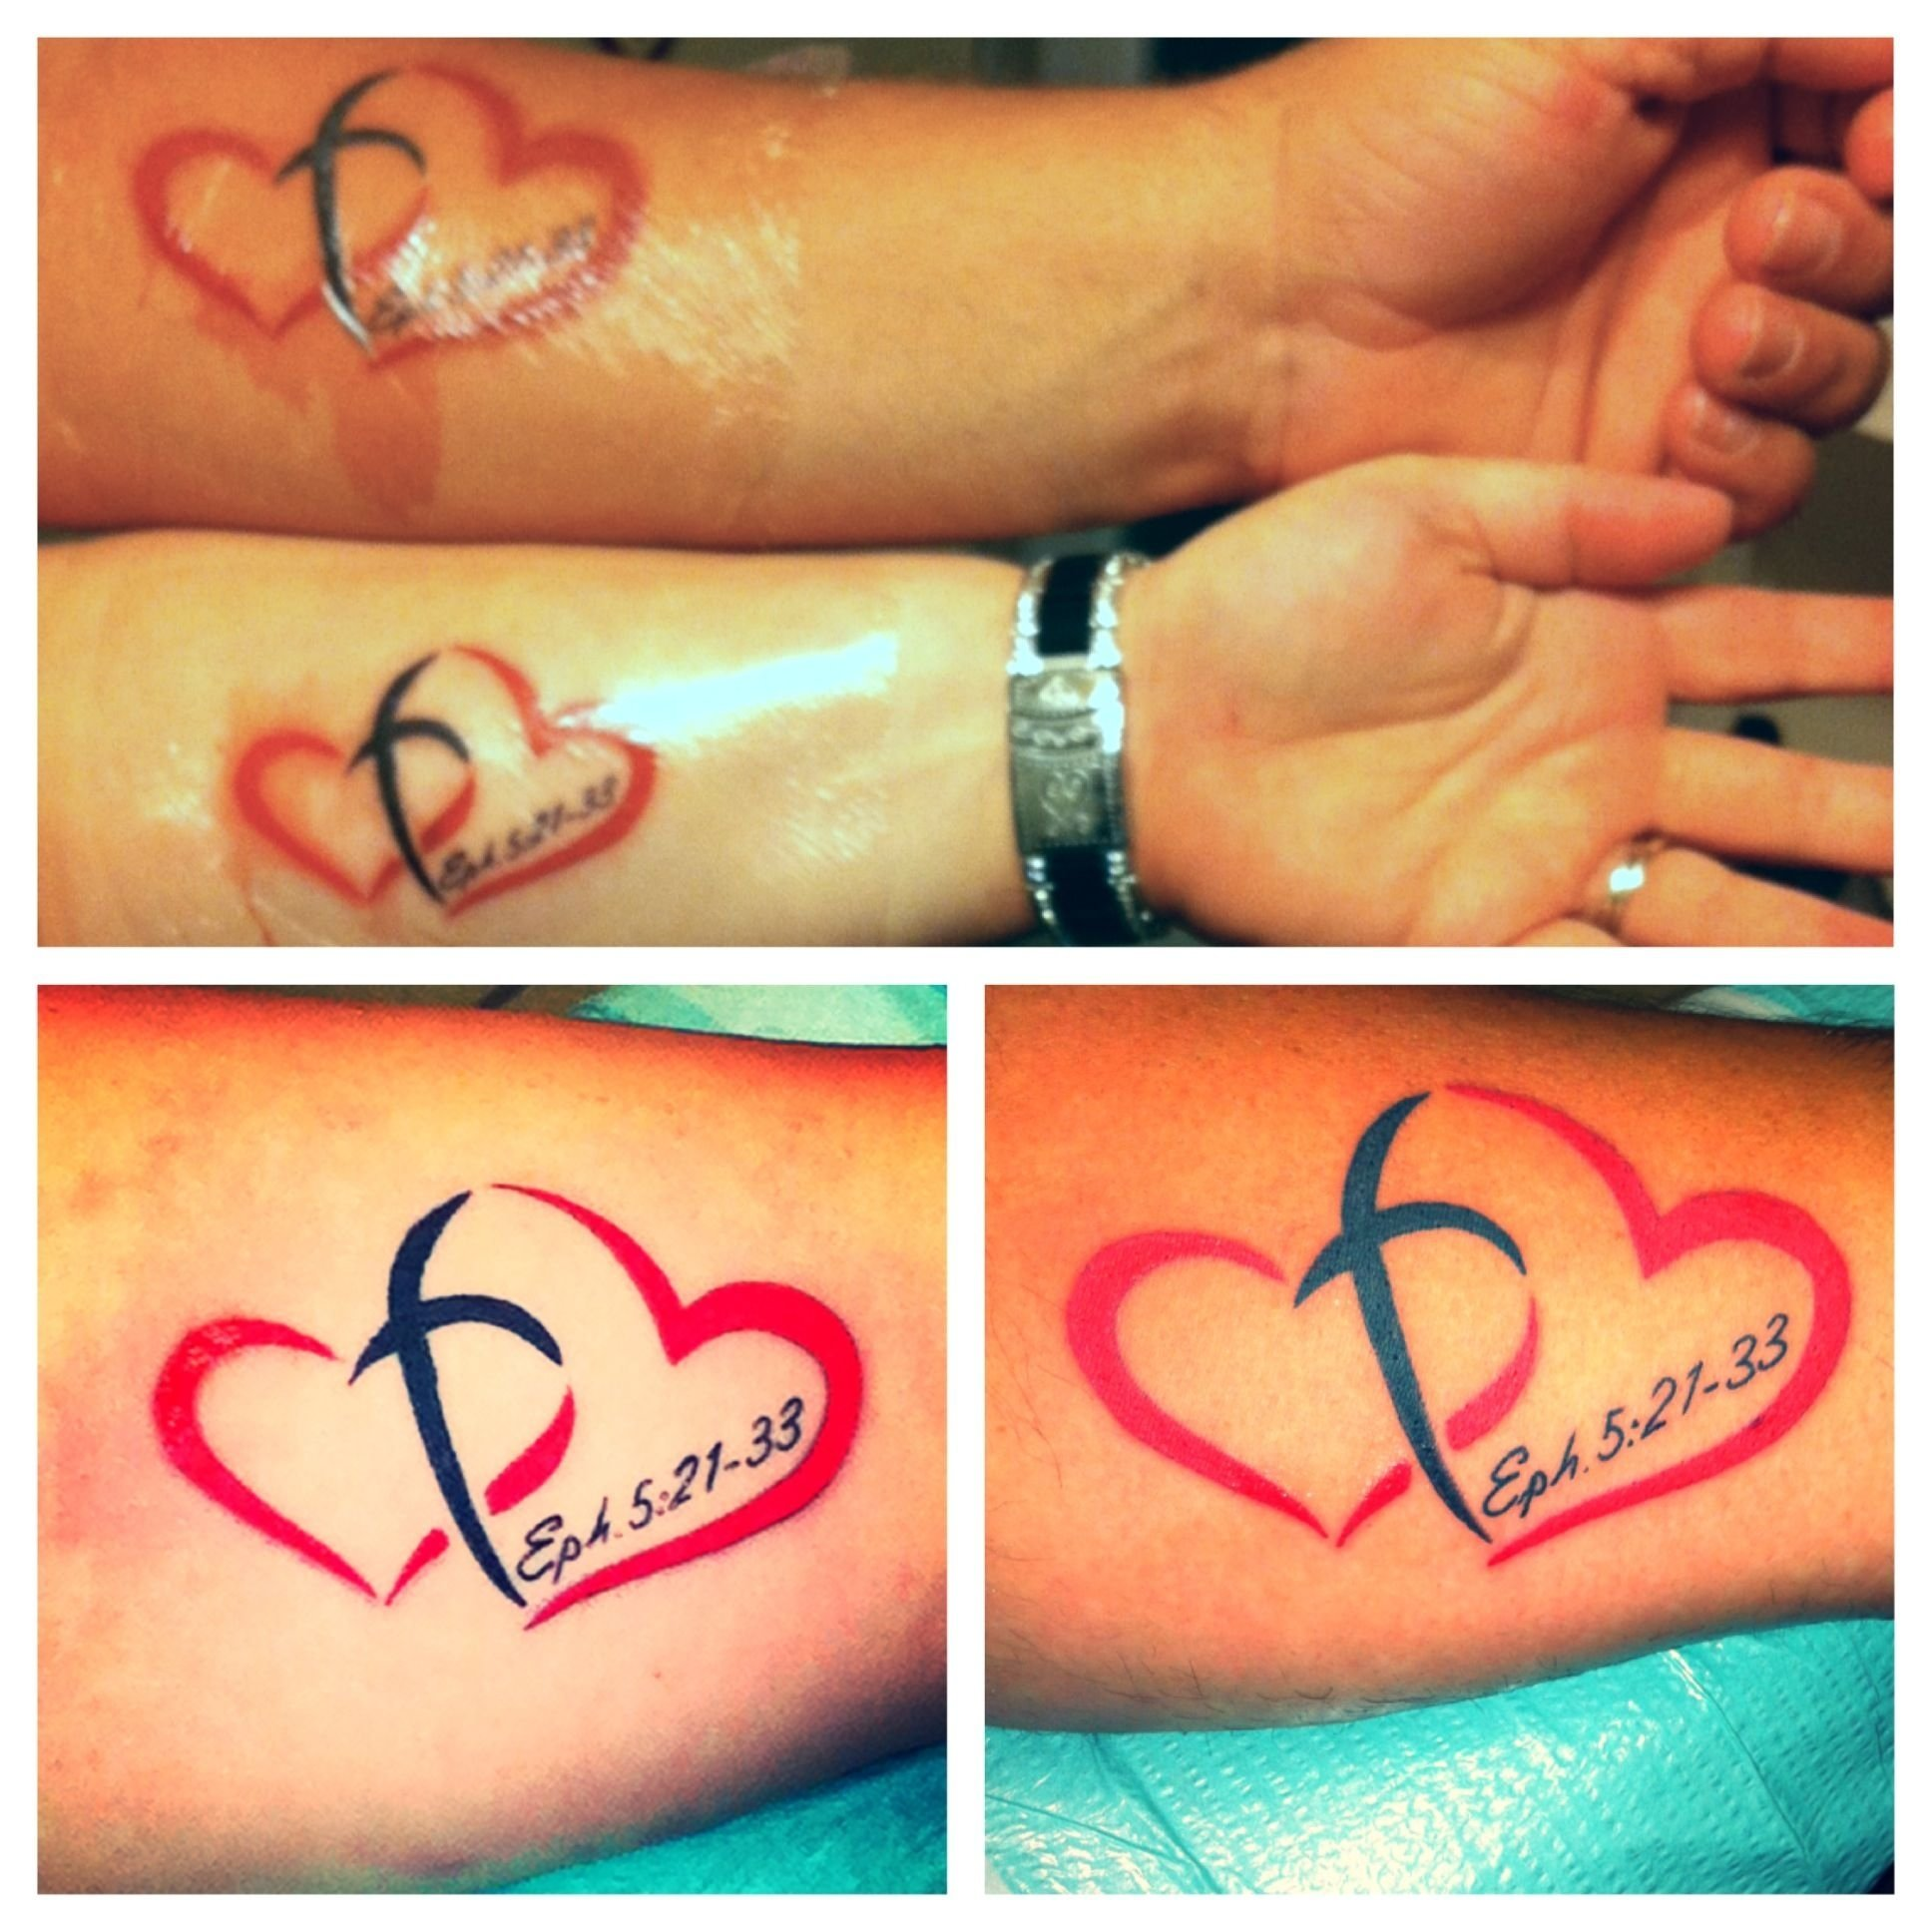 father and son tattoo ideas | christ centered marriage, matching